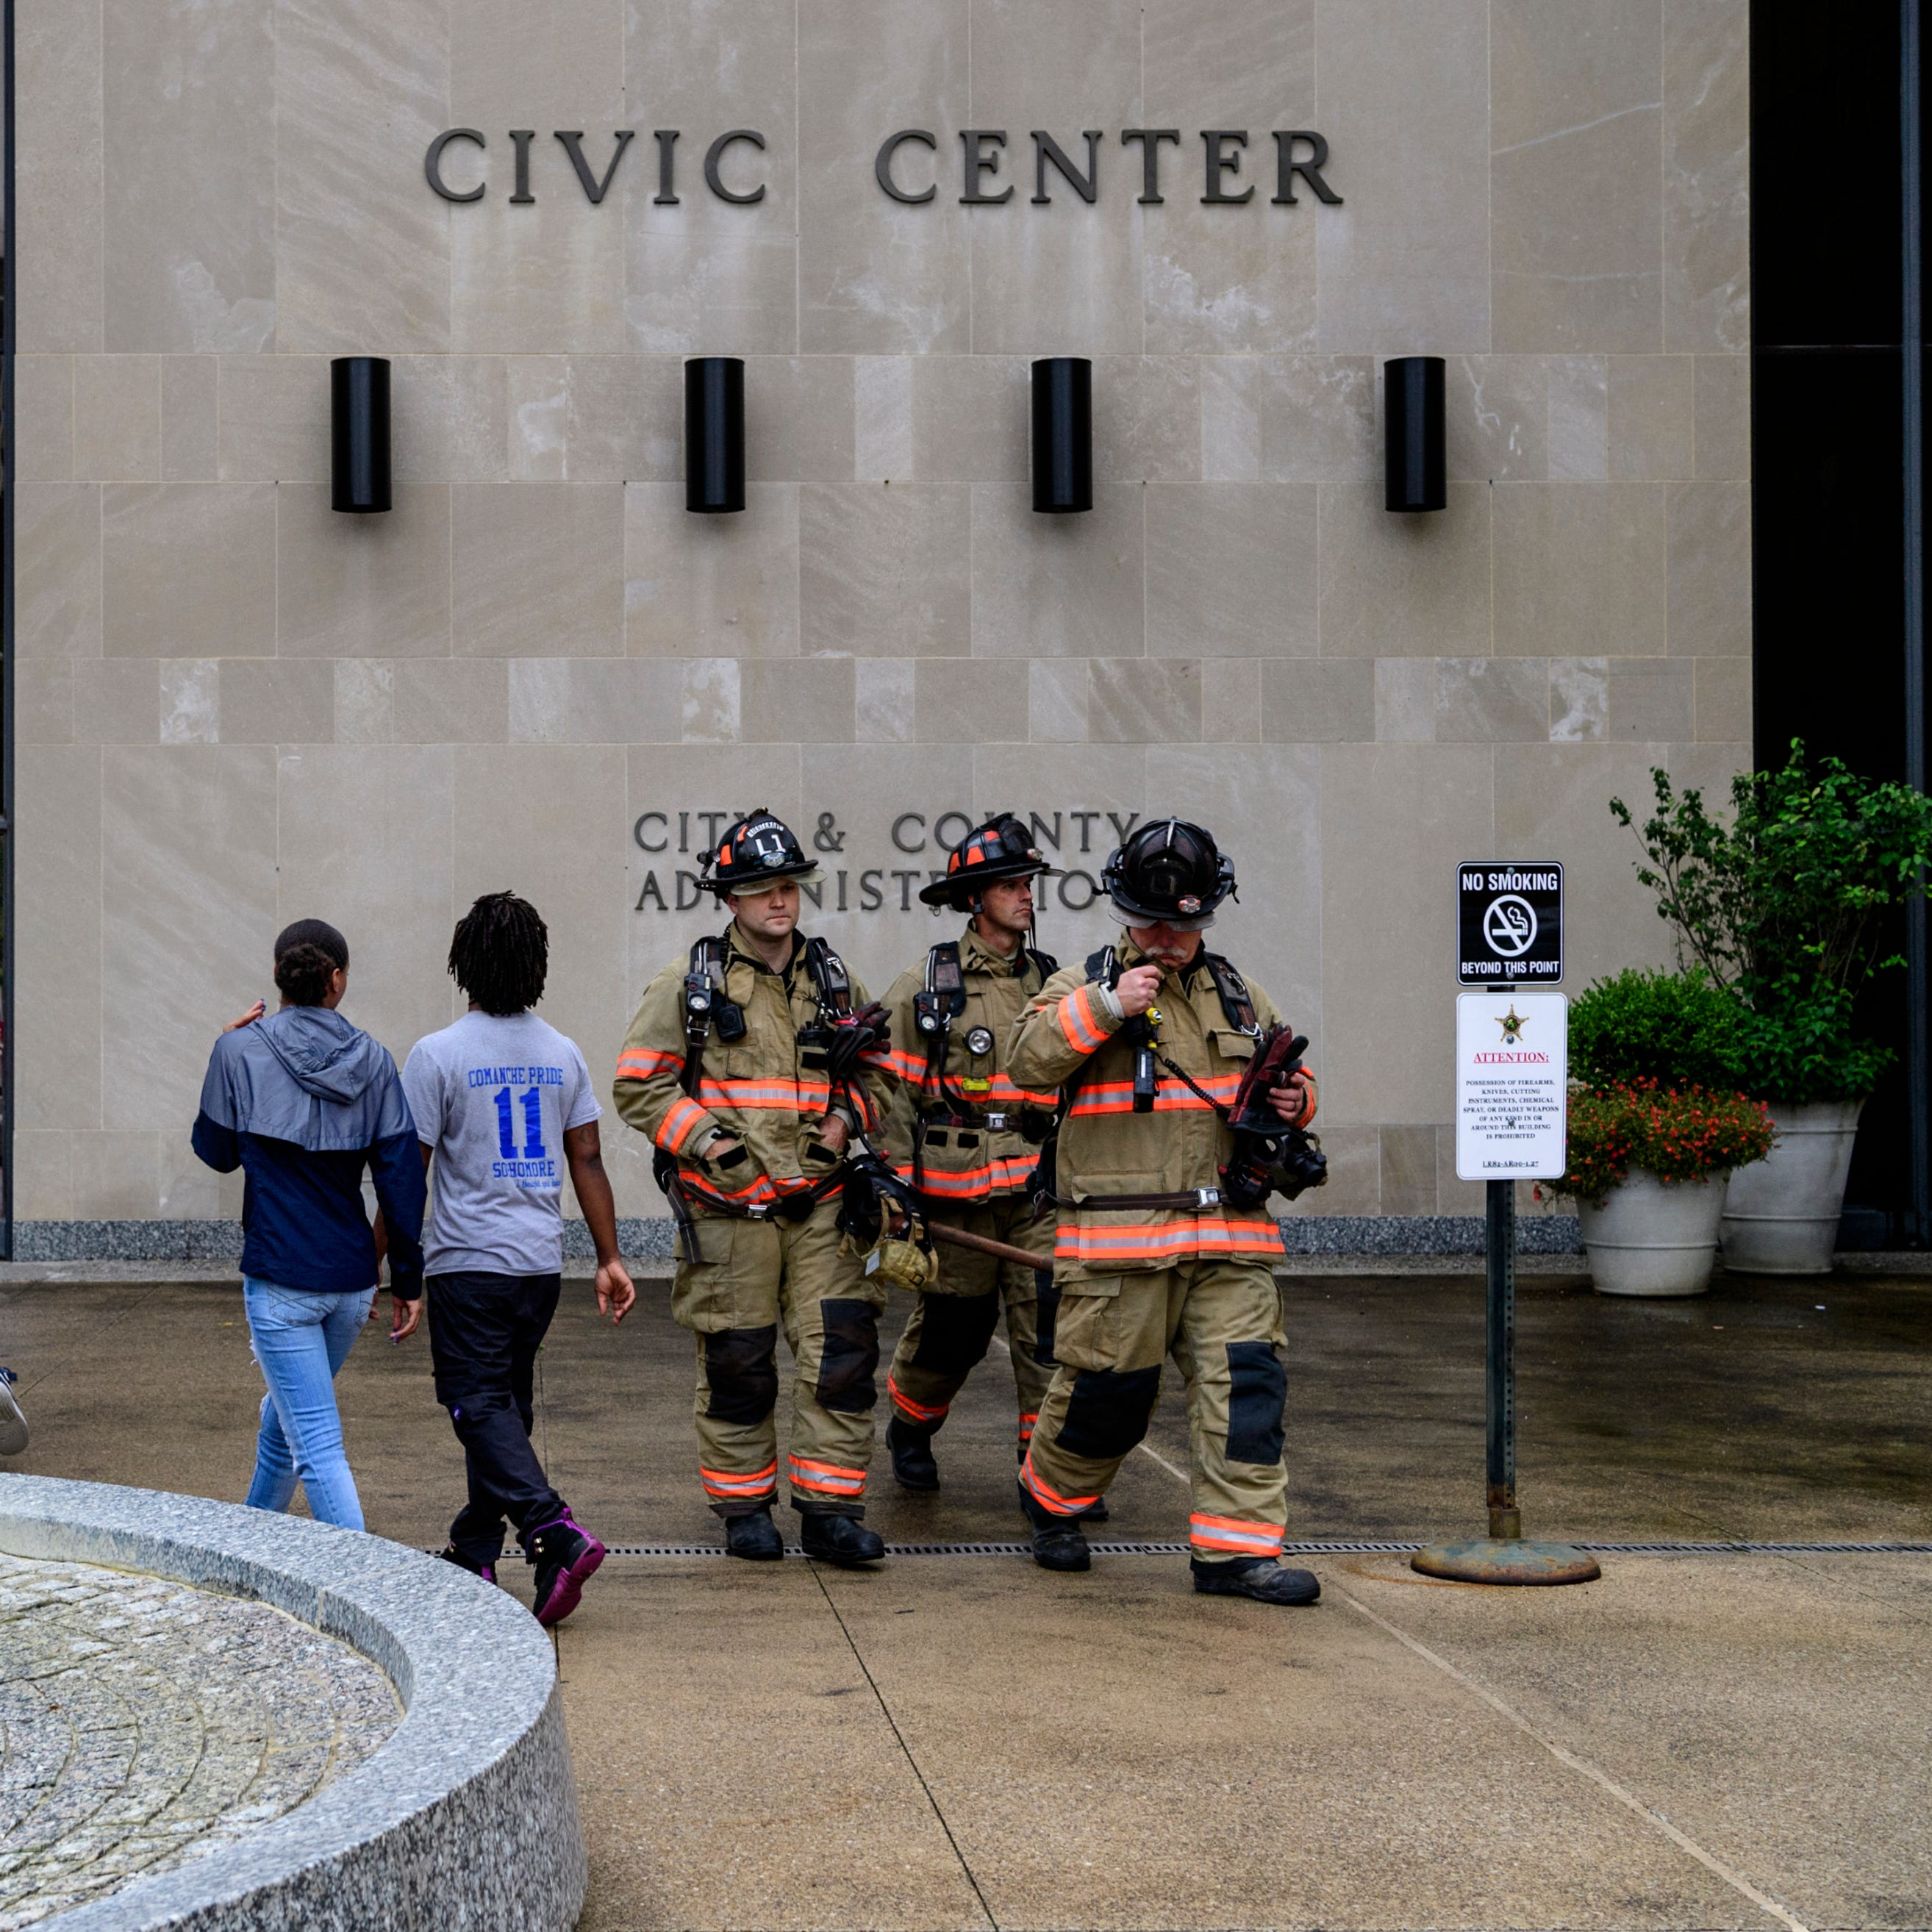 Downtown Evansville's Civic Center evacuated briefly for gas leak scare